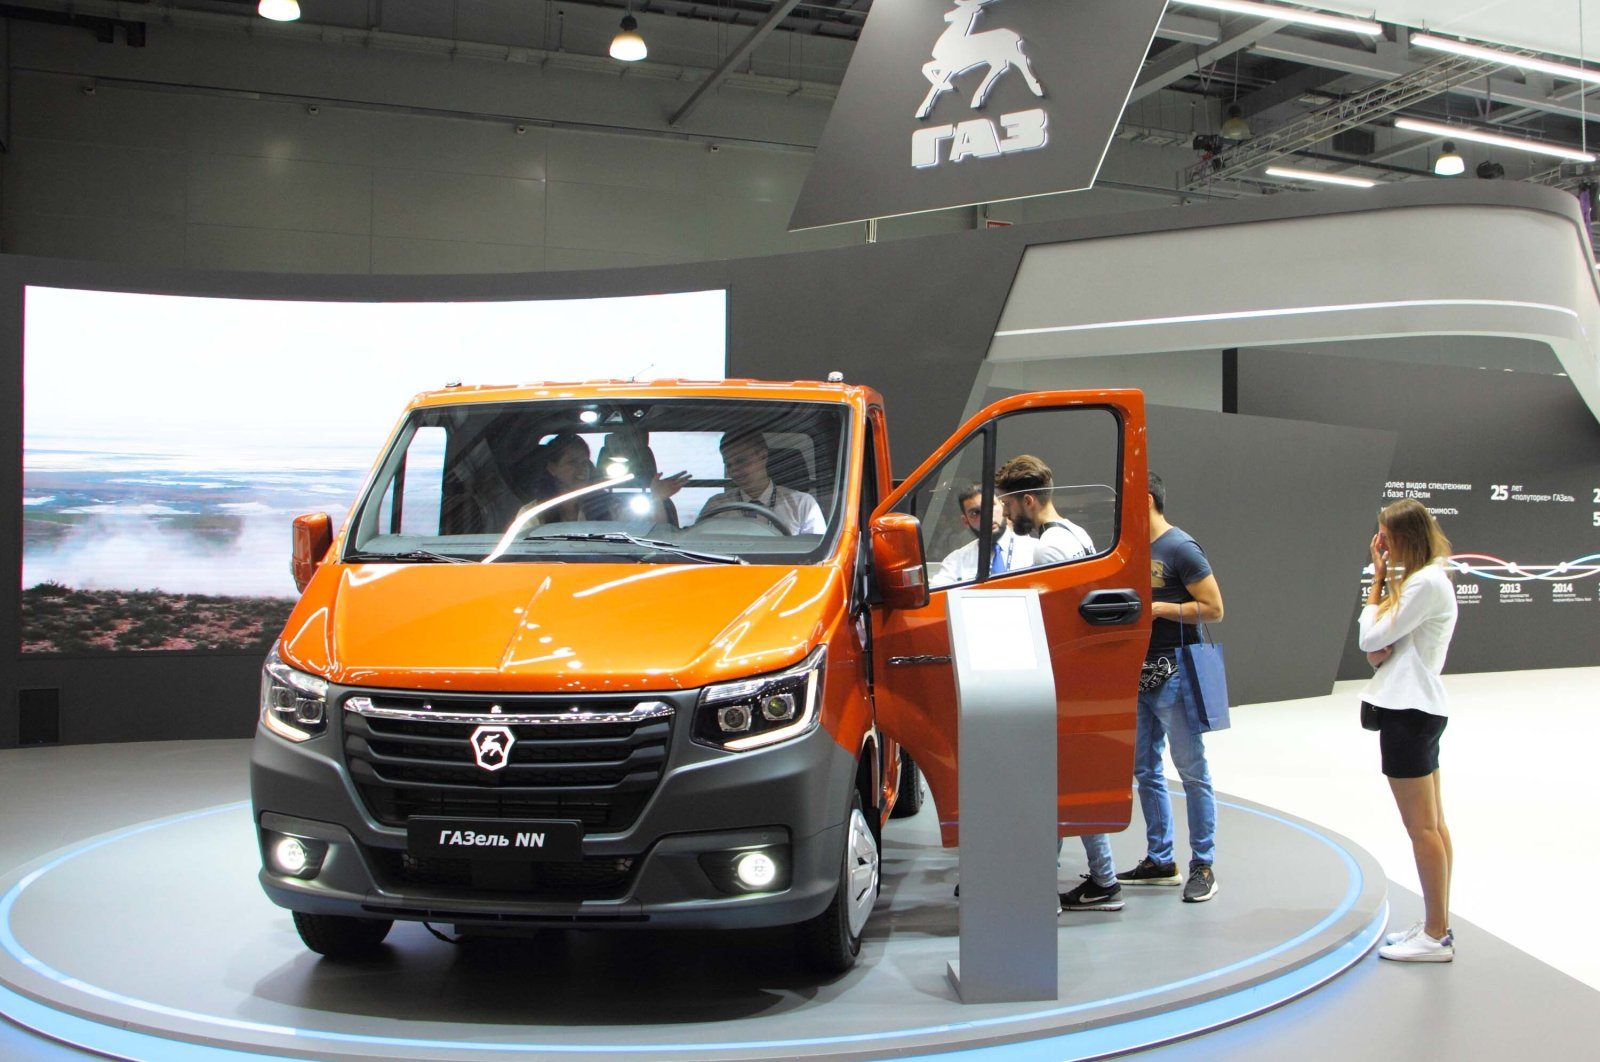 A GAZelle NN truck is on display in the Crocus Expo, Moscow, Russia, March 9, 2019. (Shutterstock Photo)